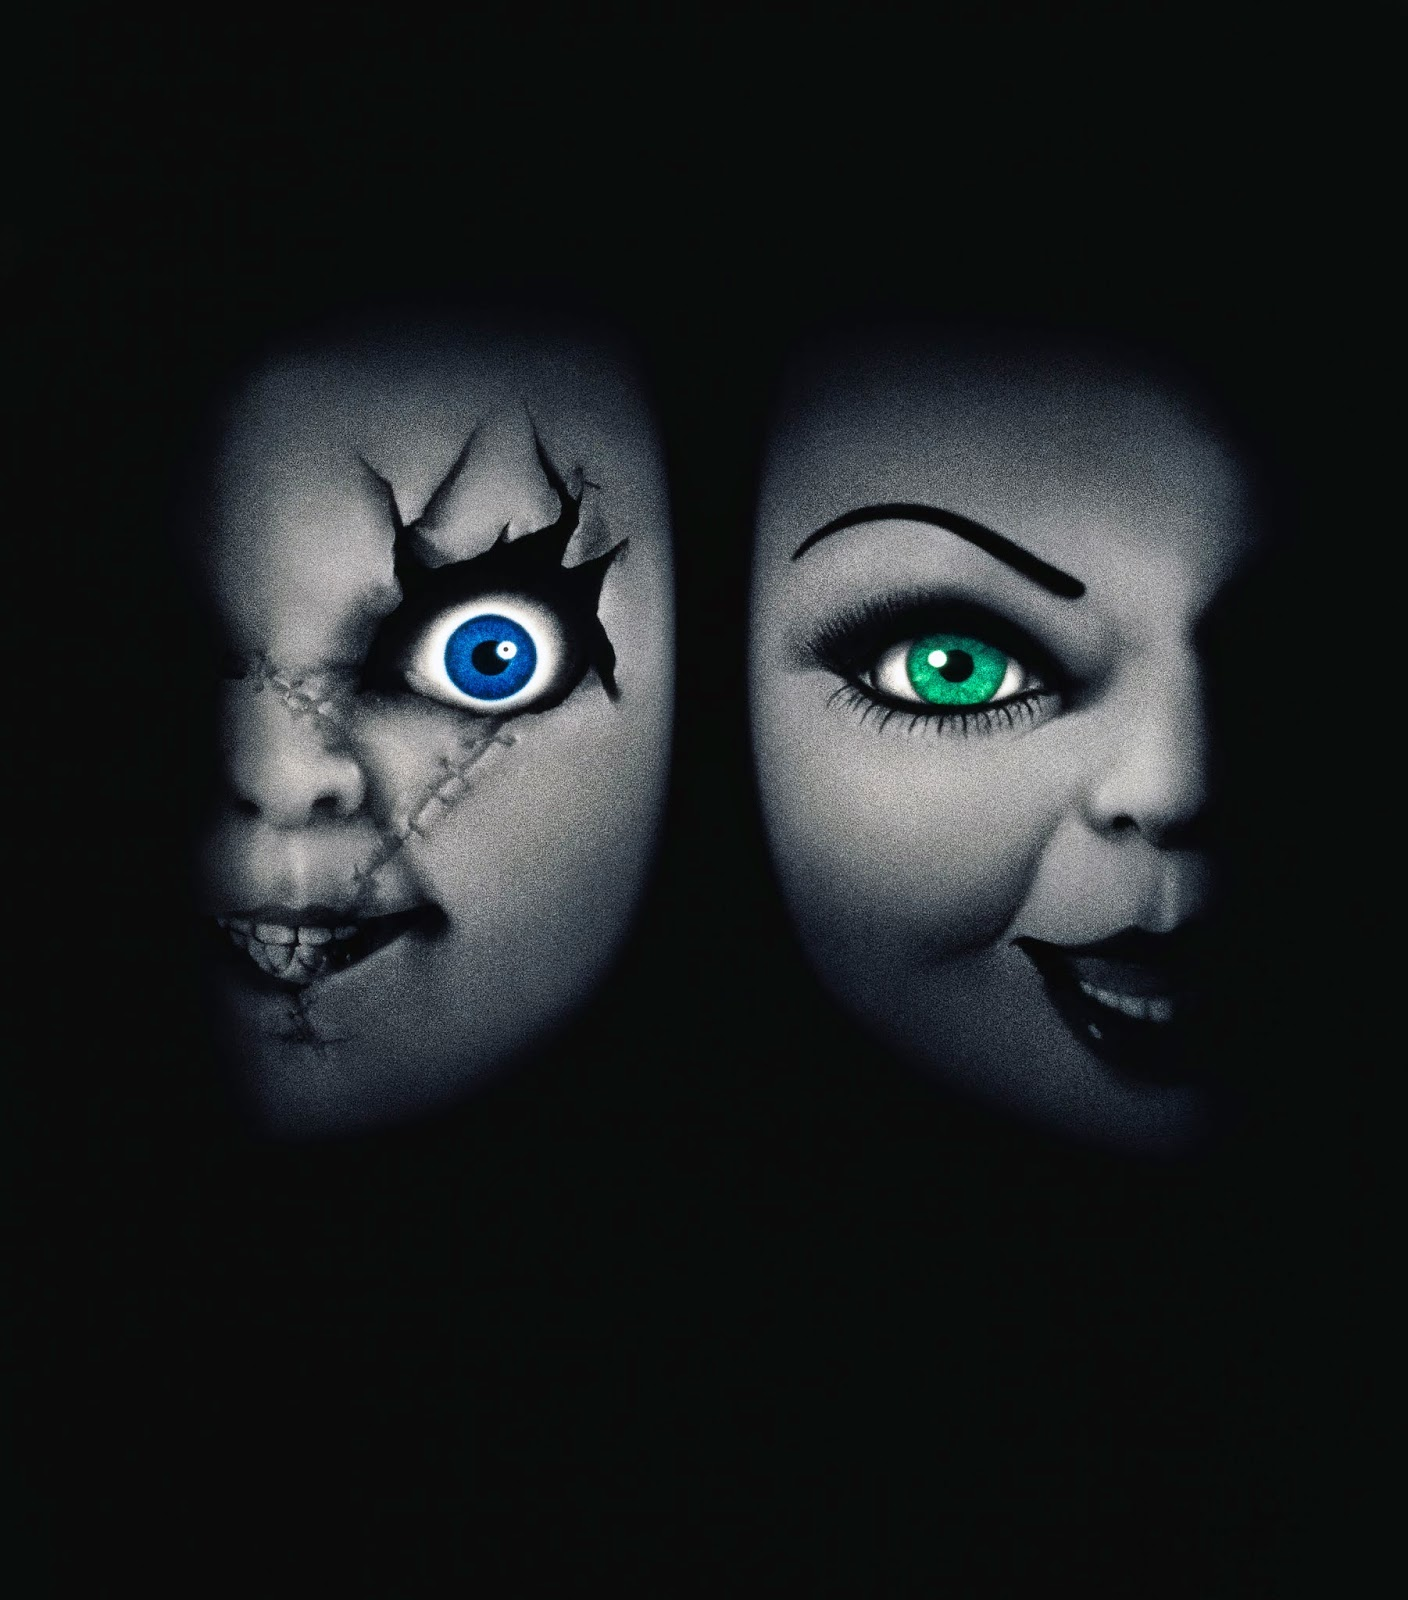 Chucky Wallpapers: The Video Creep With Casey C. Corpier: Curse Of Chucky And